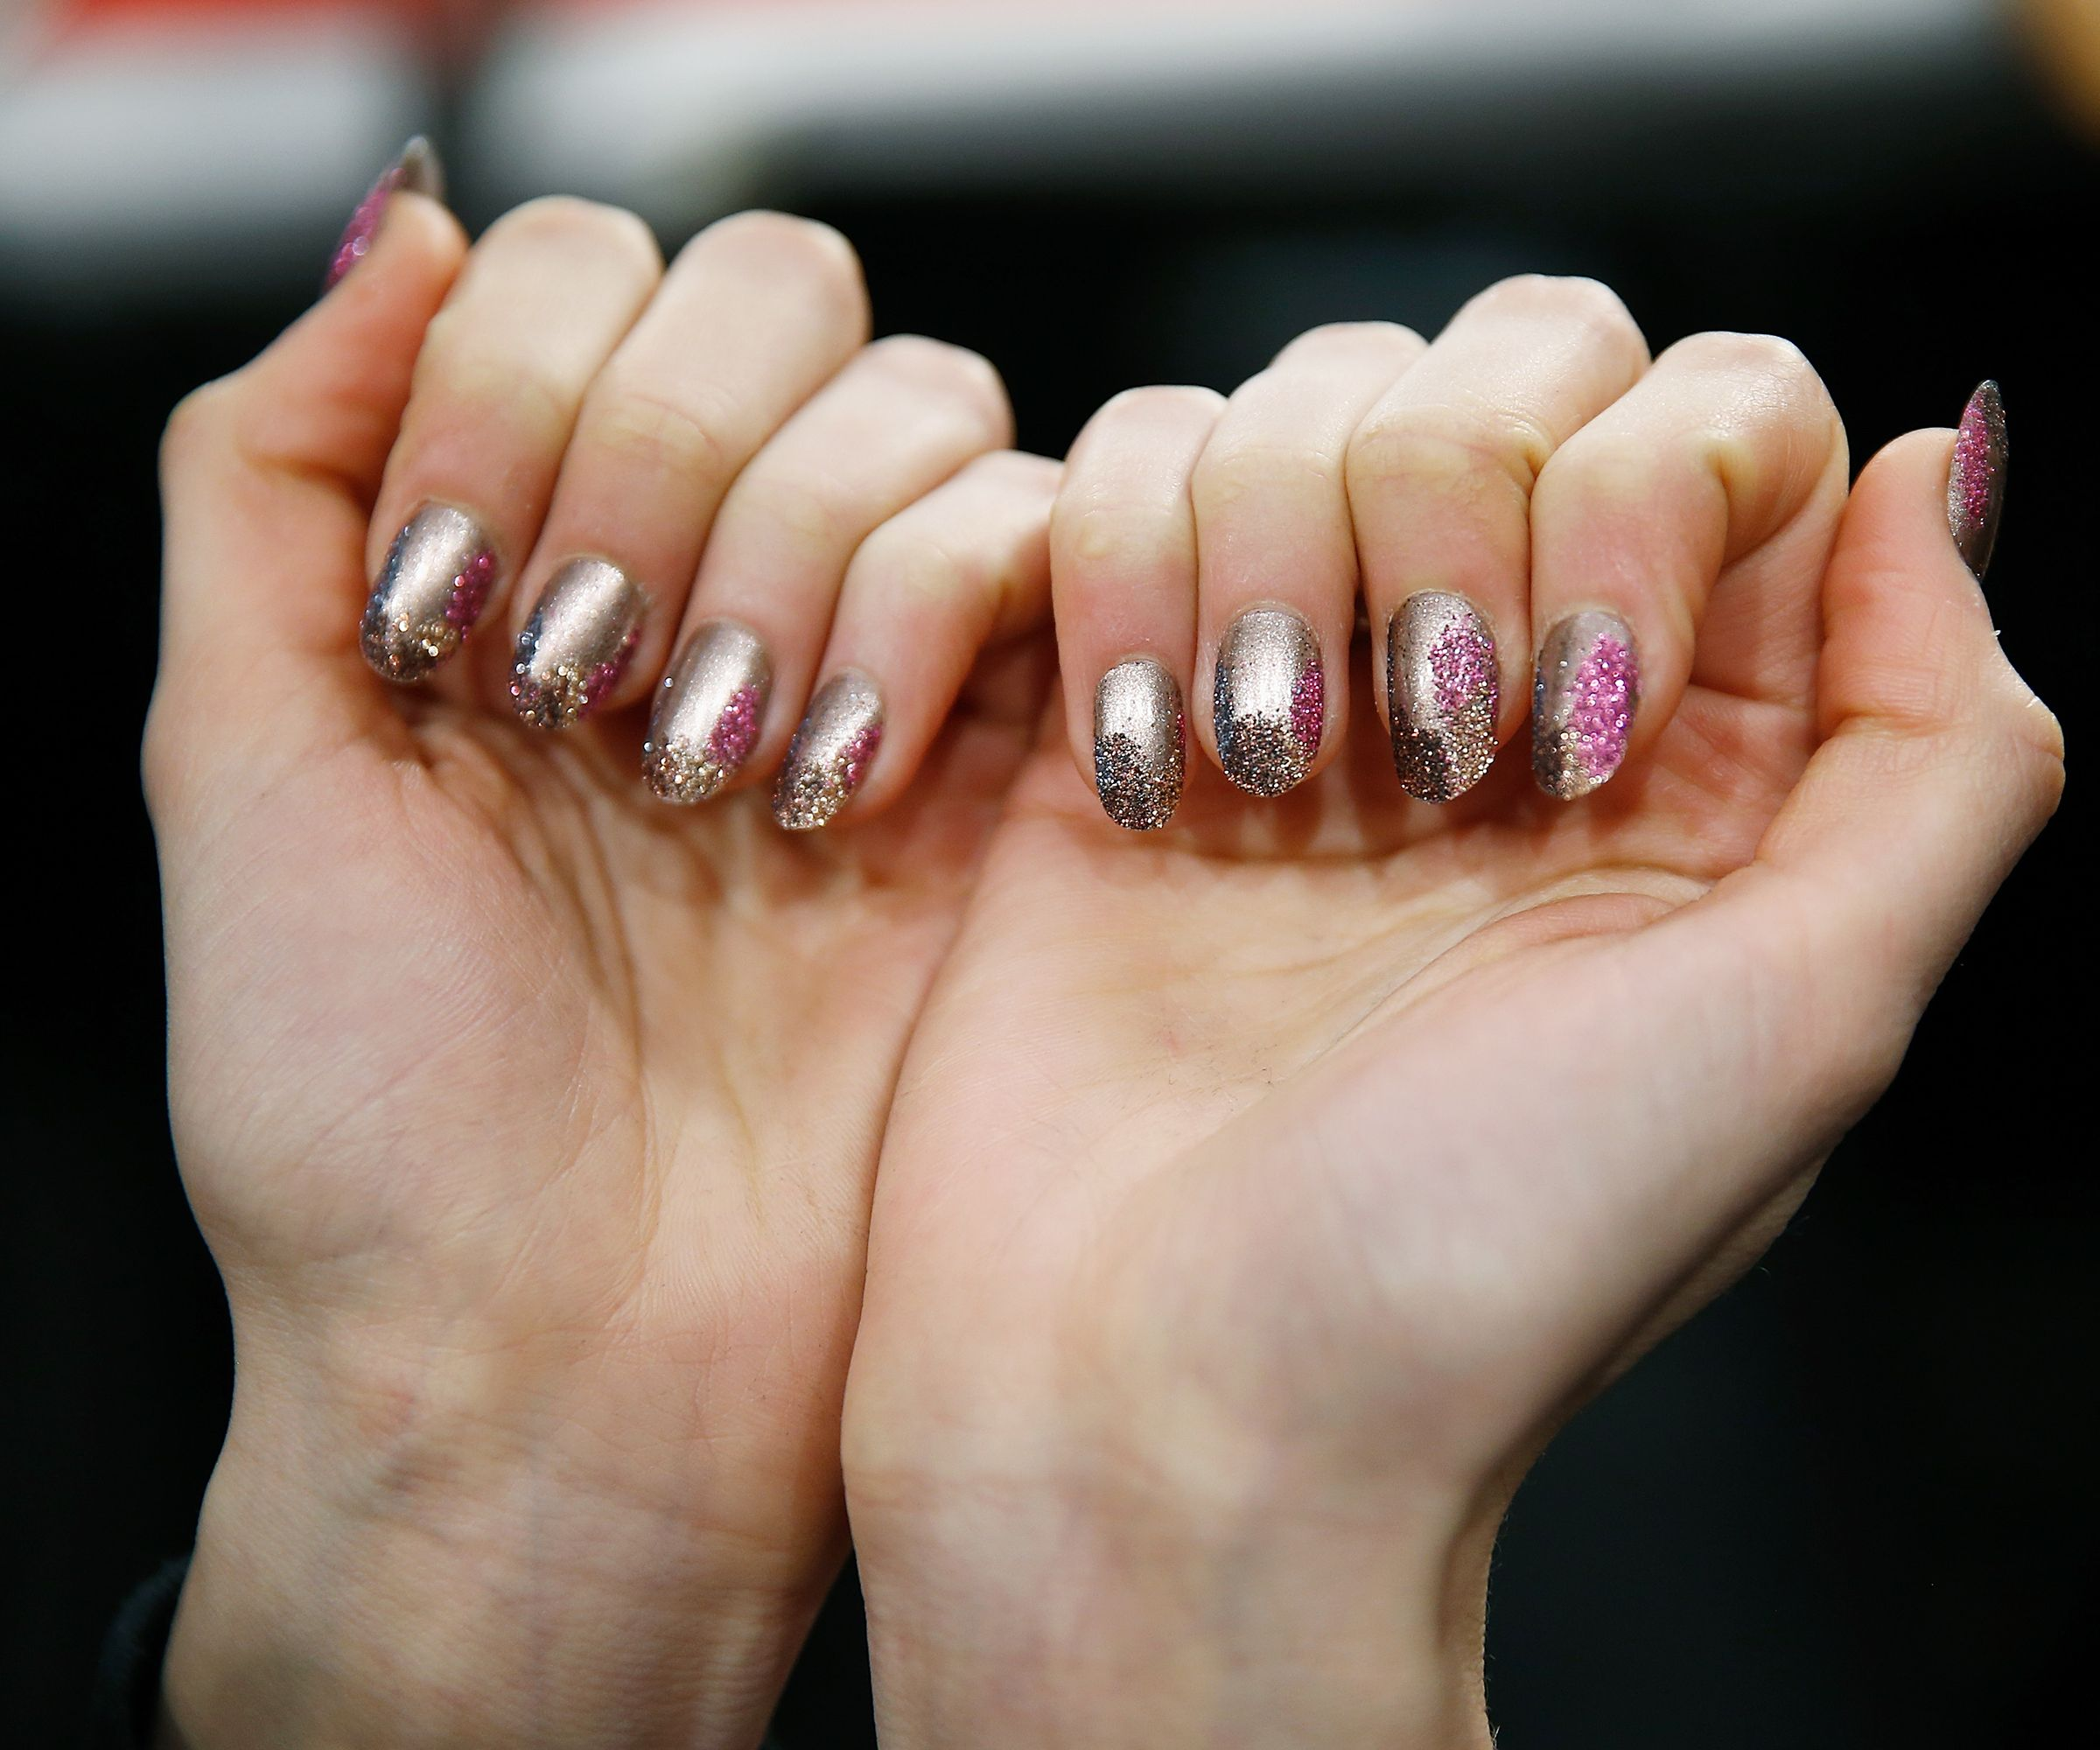 Studio 5 - Style File: Press On Nails Are Back & Better Than Ever